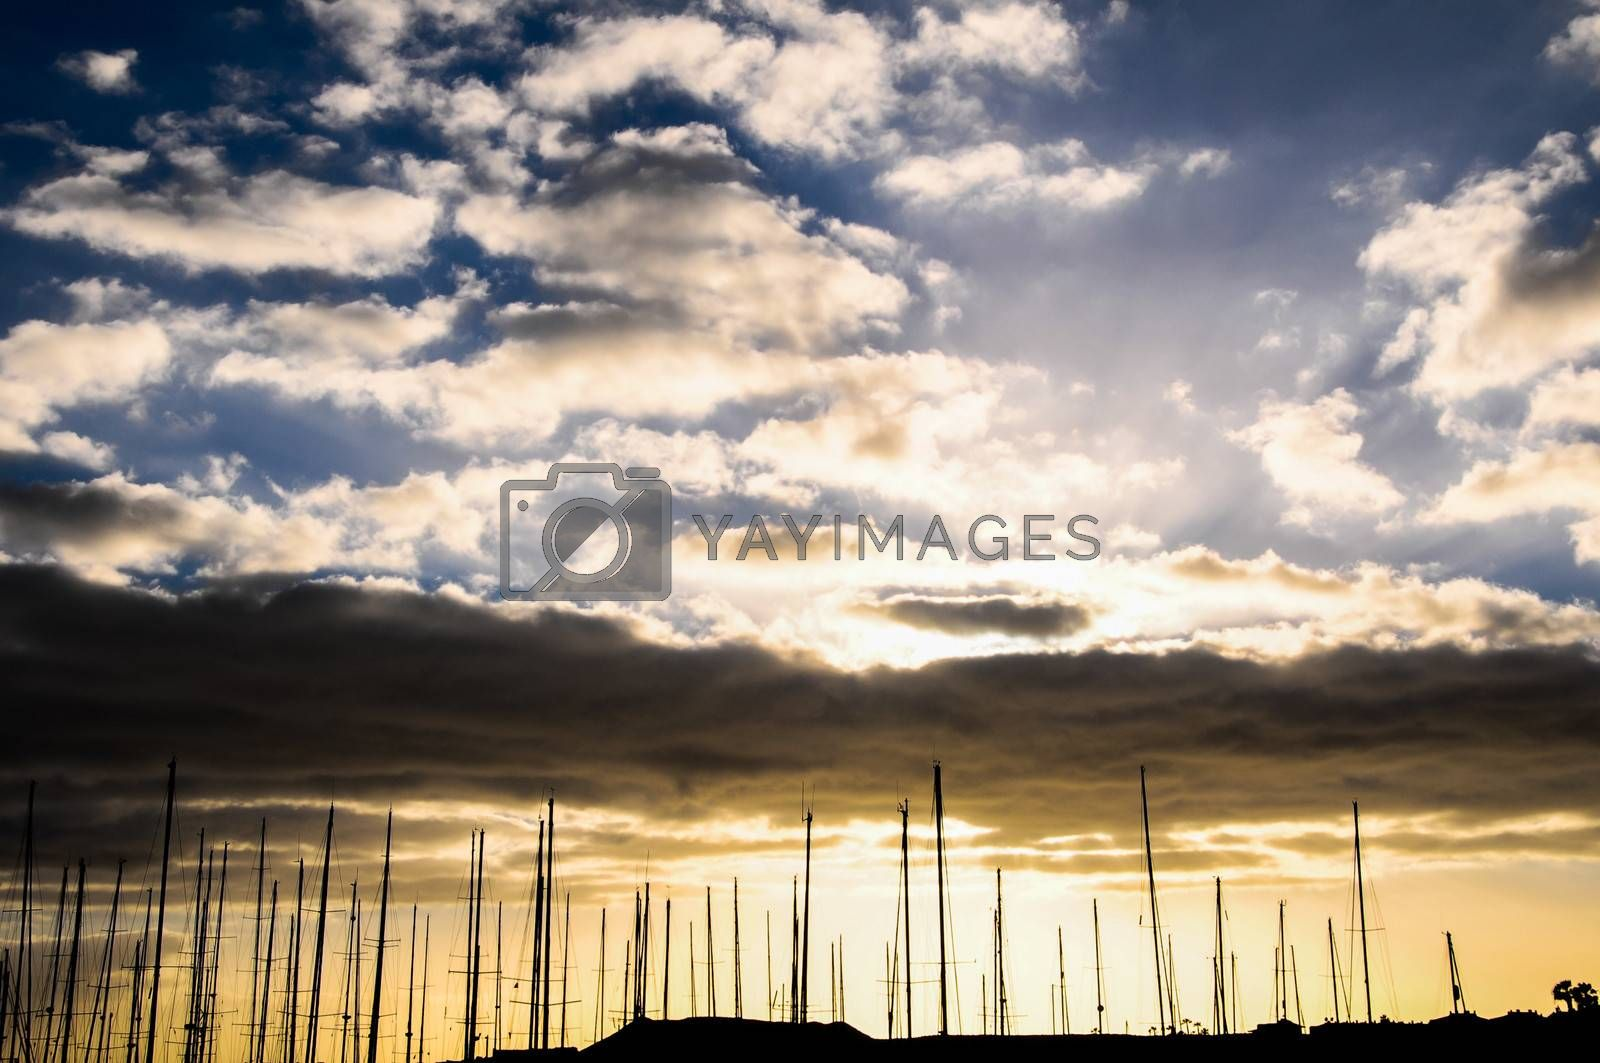 Silhouette Masts of Sail Yacht in Mmarine